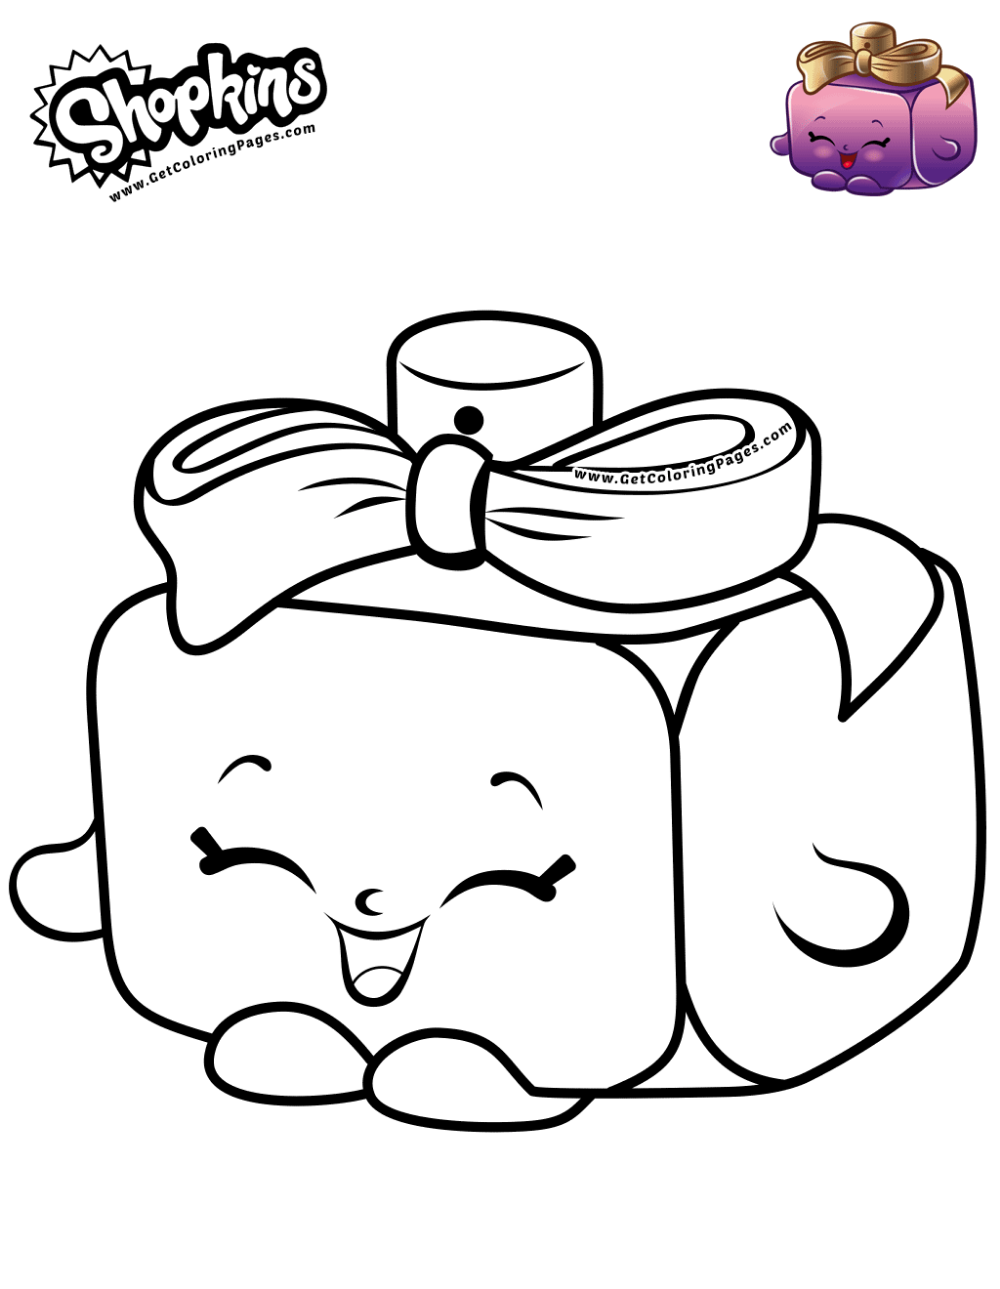 Shopkins Coloring Pages Perfume Get Barbie Coloring Shopkins Colouring Pages Barbie Coloring Pages